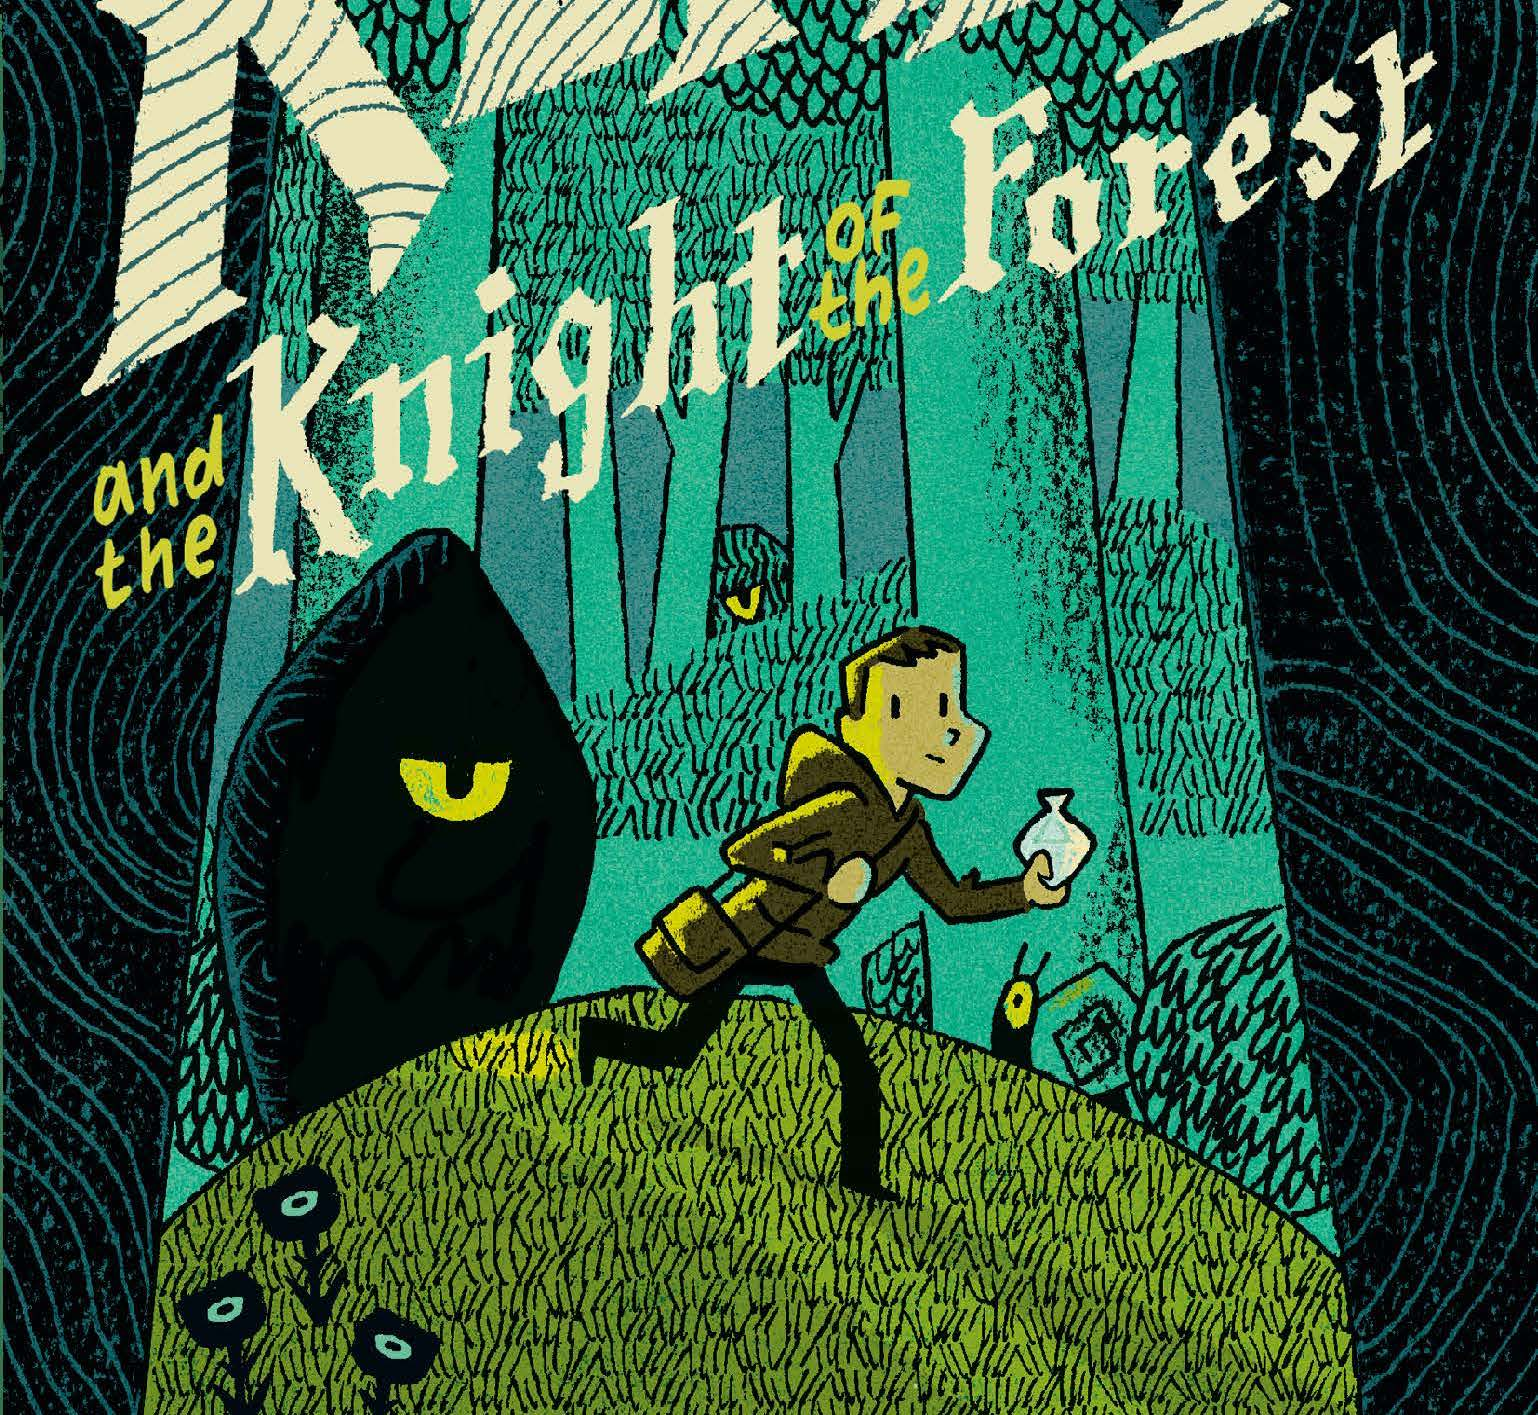 'Kerry and the Knight of the Forest' review: a charming story for your inner child